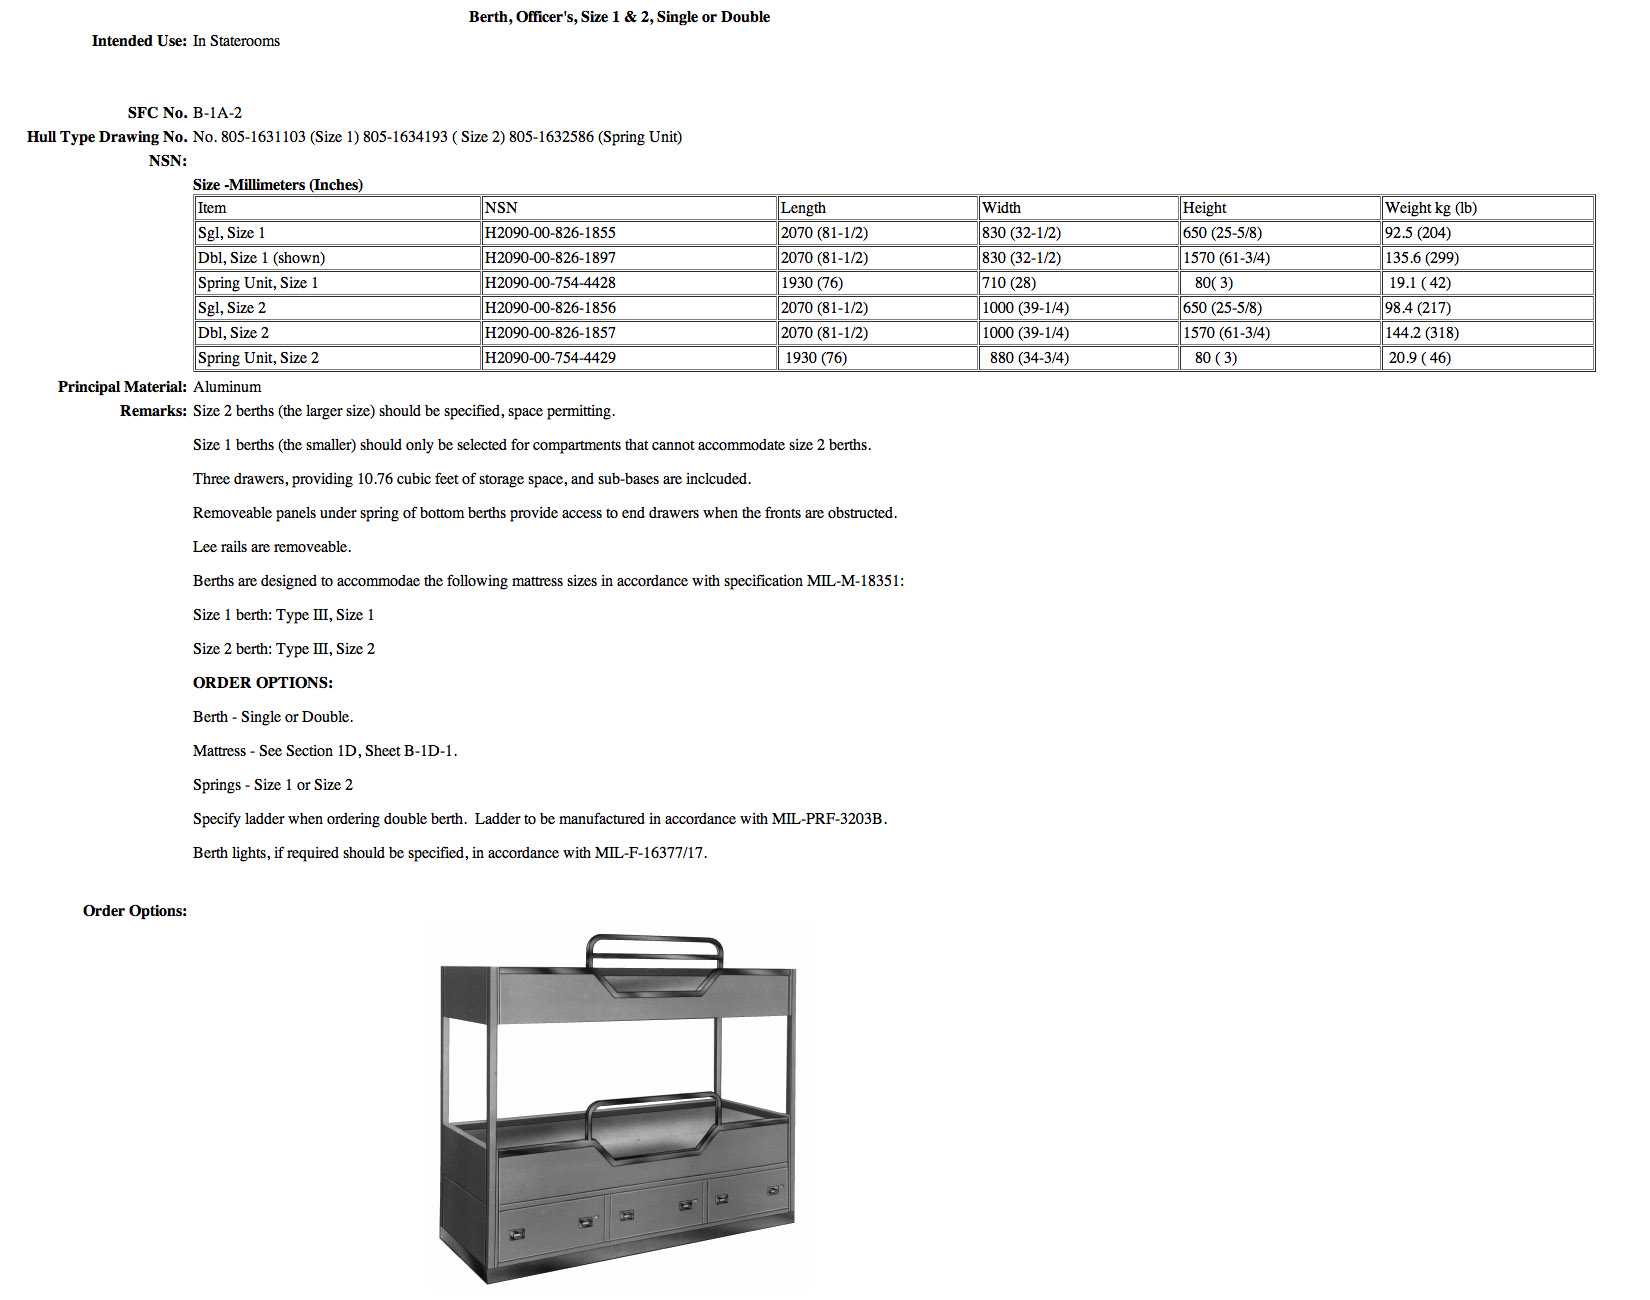 mattress sizes 3 4. OFFICER\u0027S, SIZE 1 \u0026 2, SINGLE OR DOUBLE \u003e B-1A-3 BERTH, TRANSOM, OFFICER, TYPE L36 L36-W31 B-1A-4 WITH FOLD-AWAY TABLE (SUBMARINES) Mattress Sizes 3 4